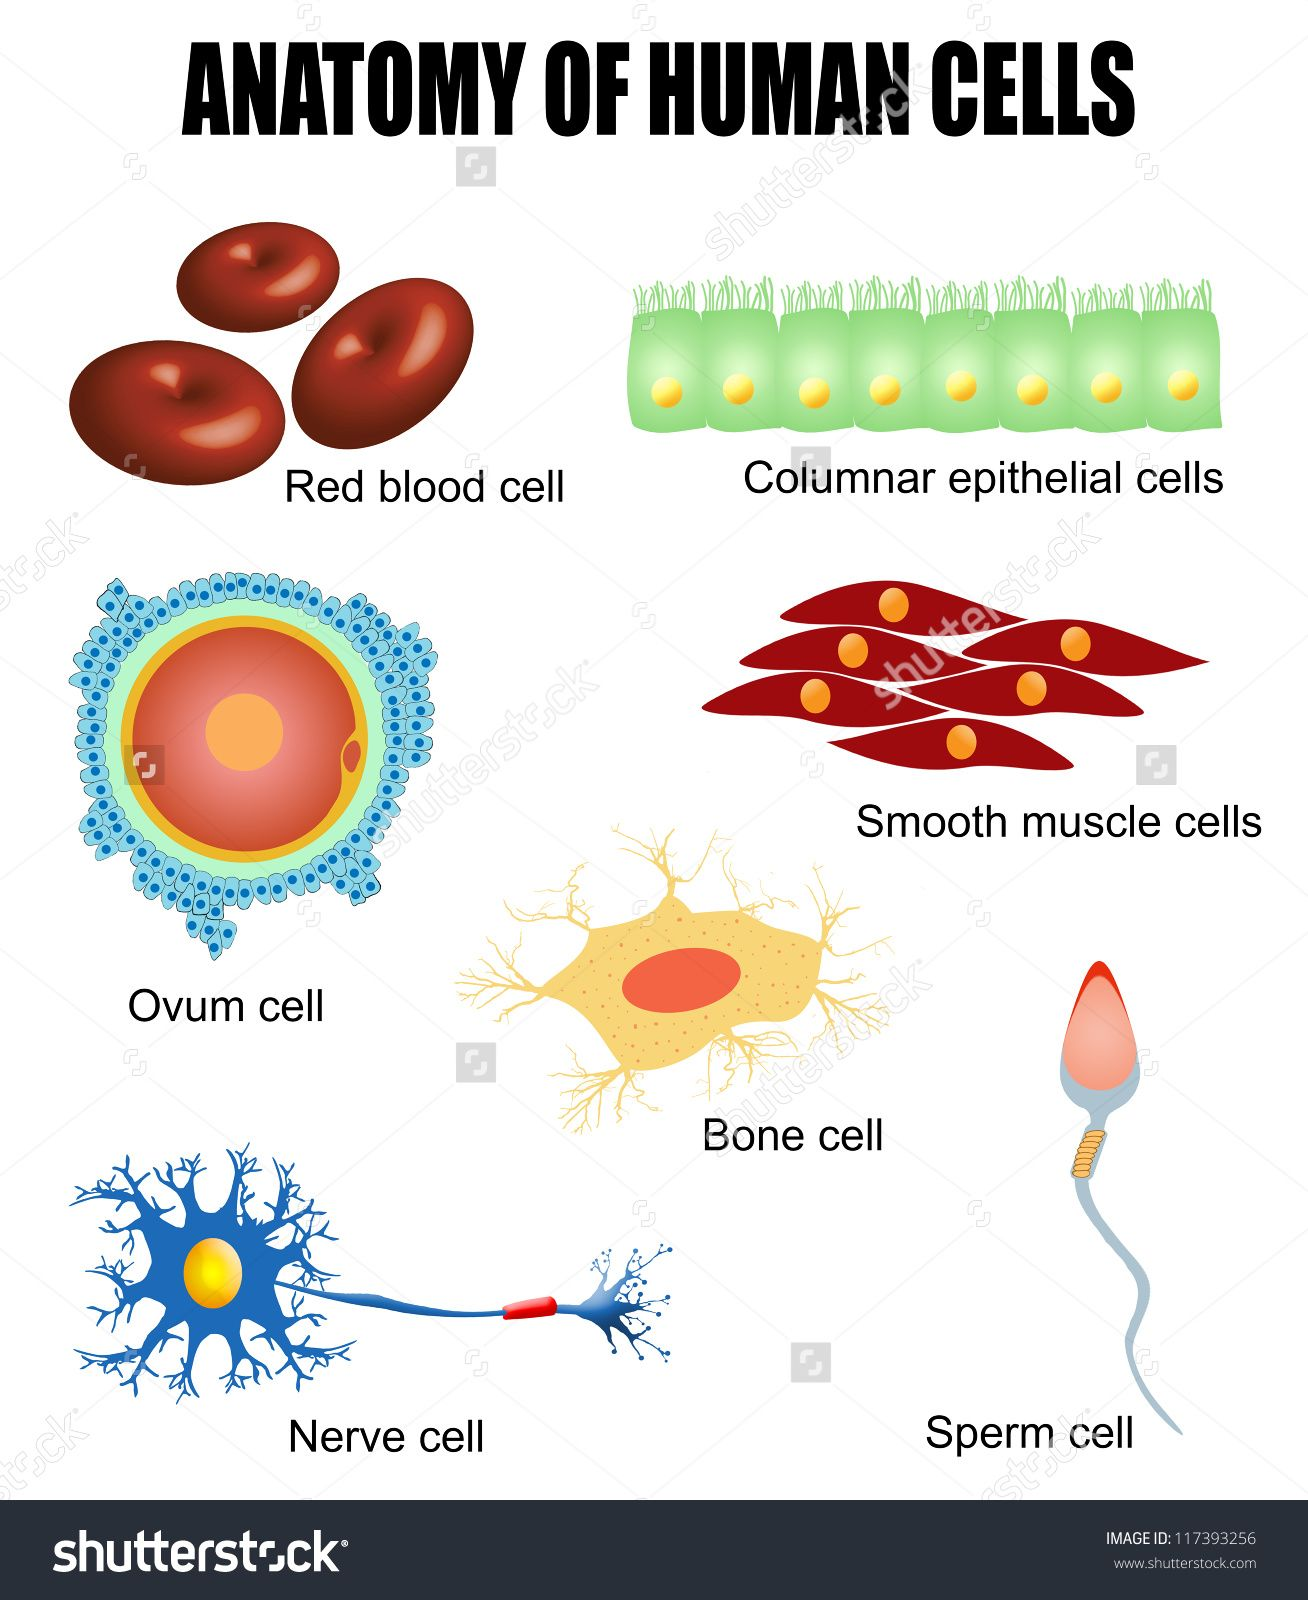 hight resolution of anatomy of human cells useful for education in schools and clinics vector illustration